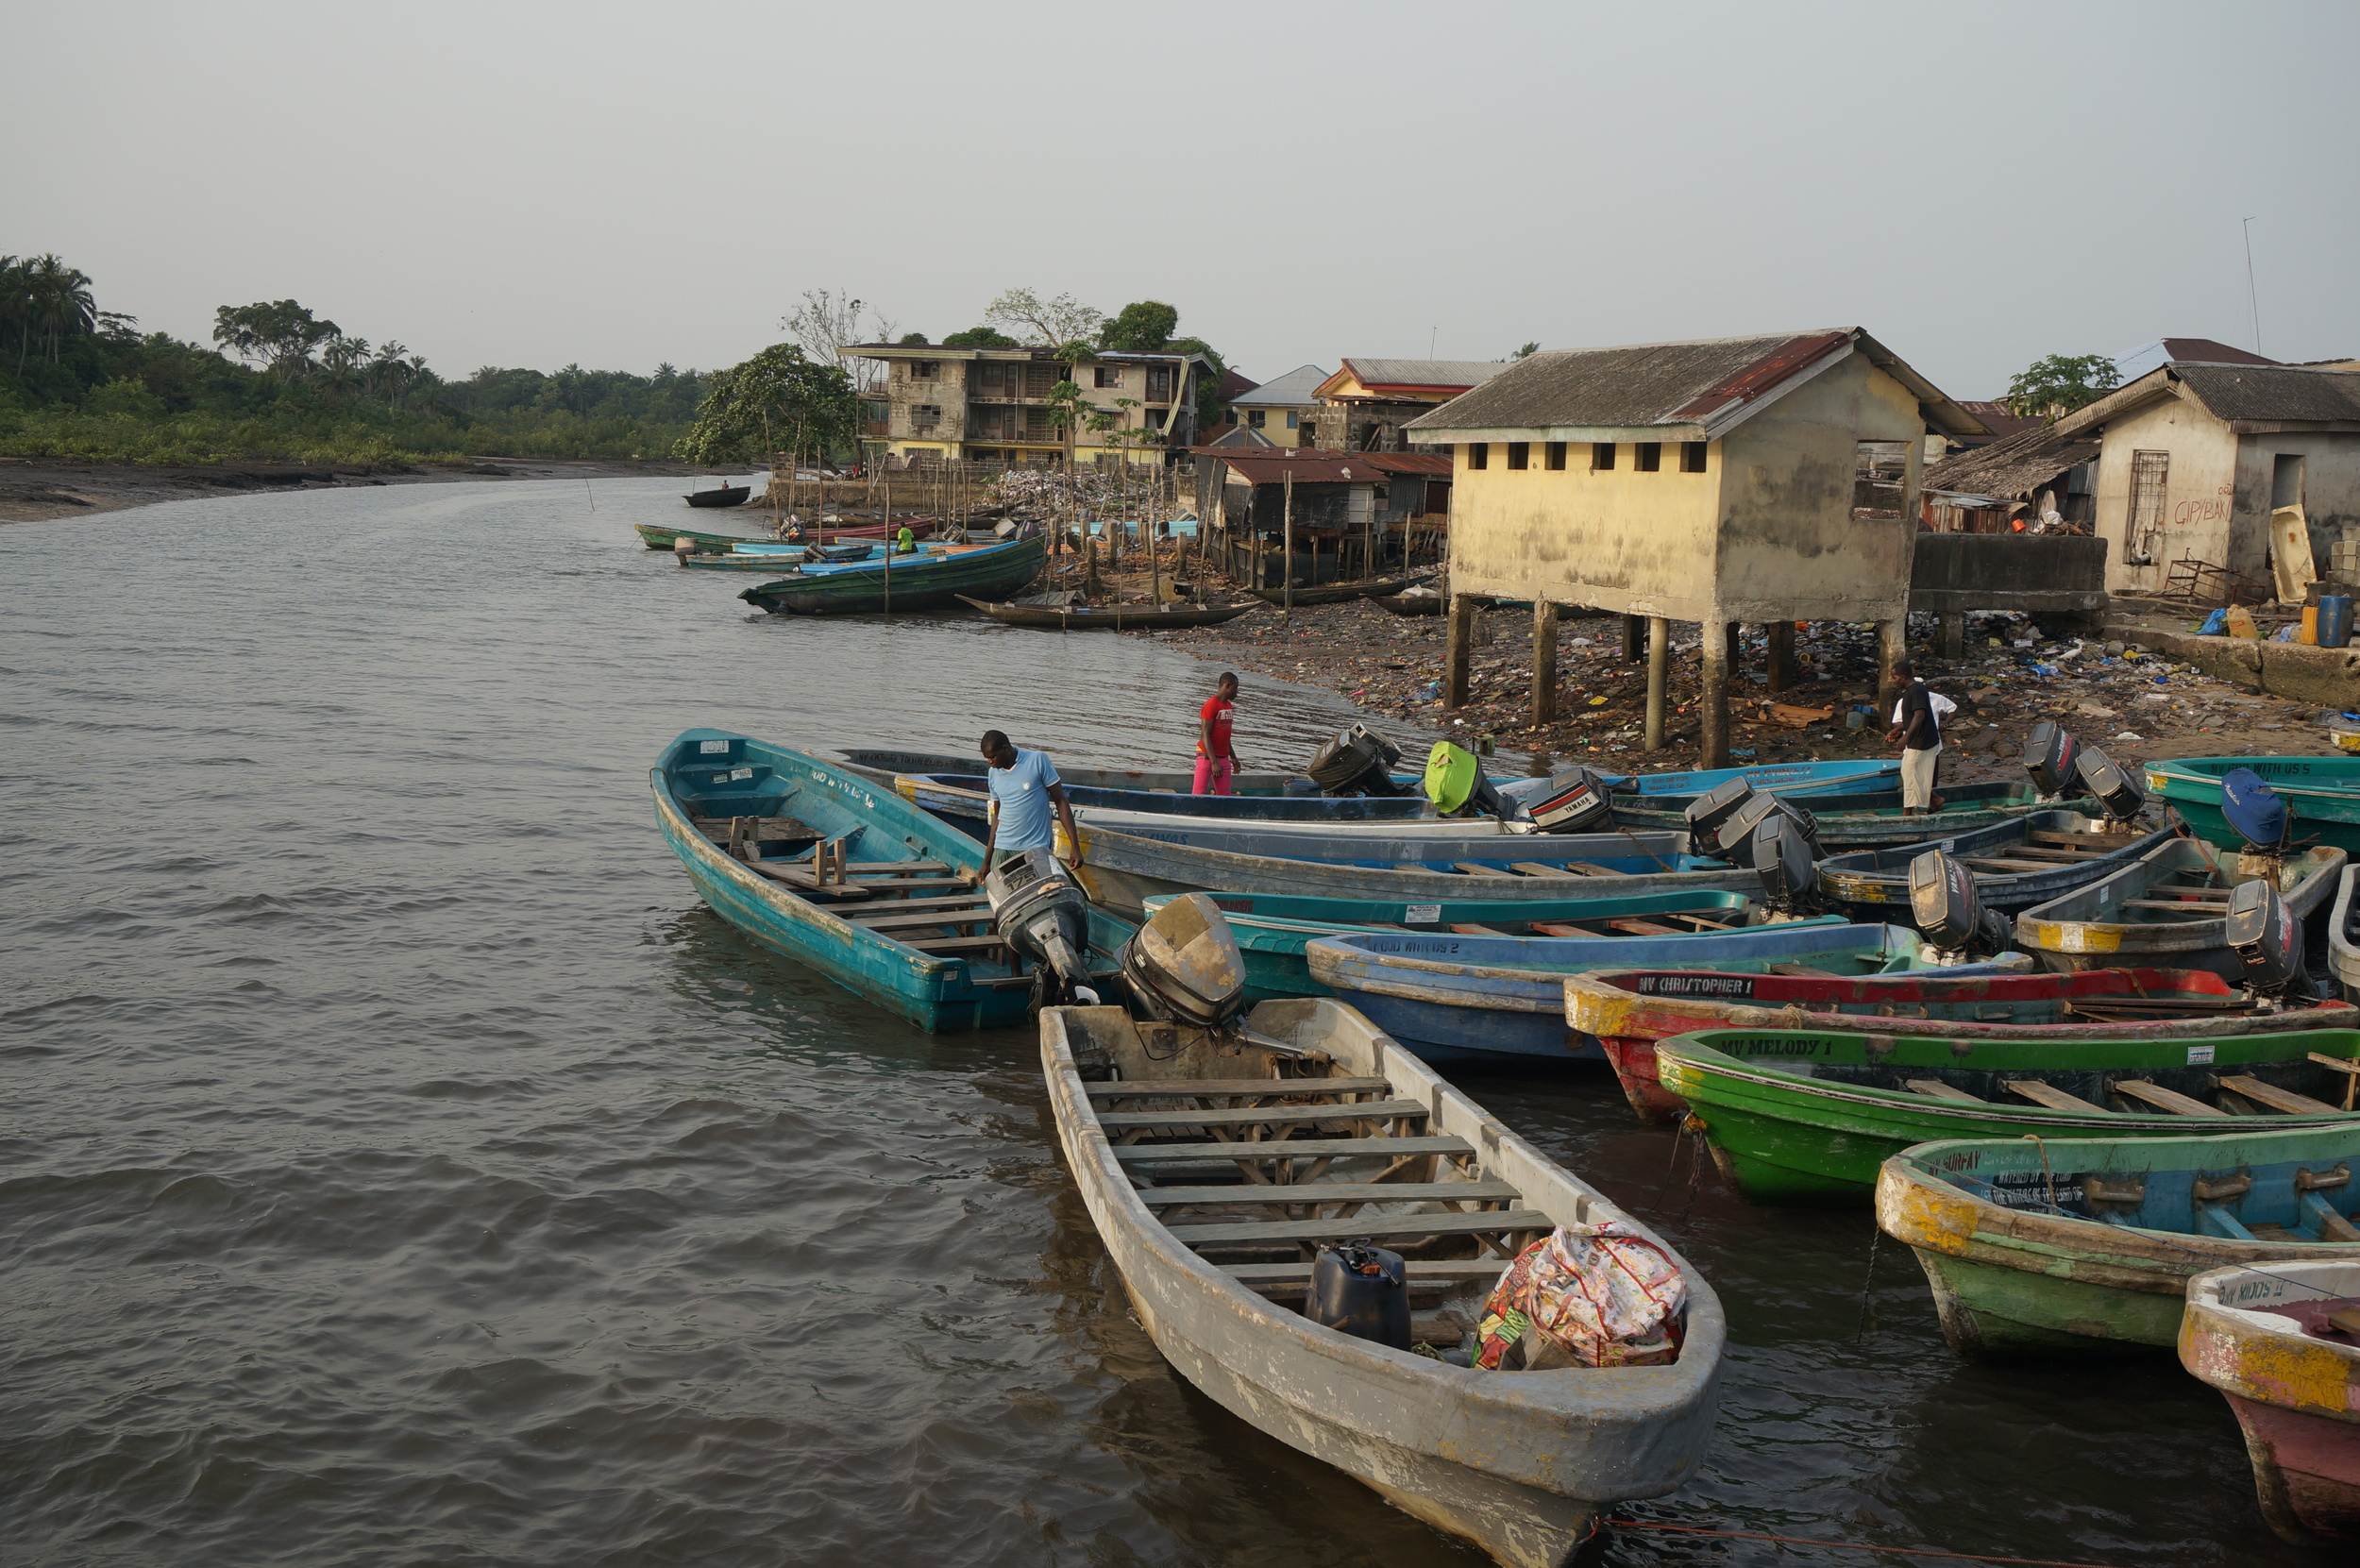 Throughout the Niger-Delta, communities are linked by creeks, creating strong ties between urban waterfronts and rural villages.